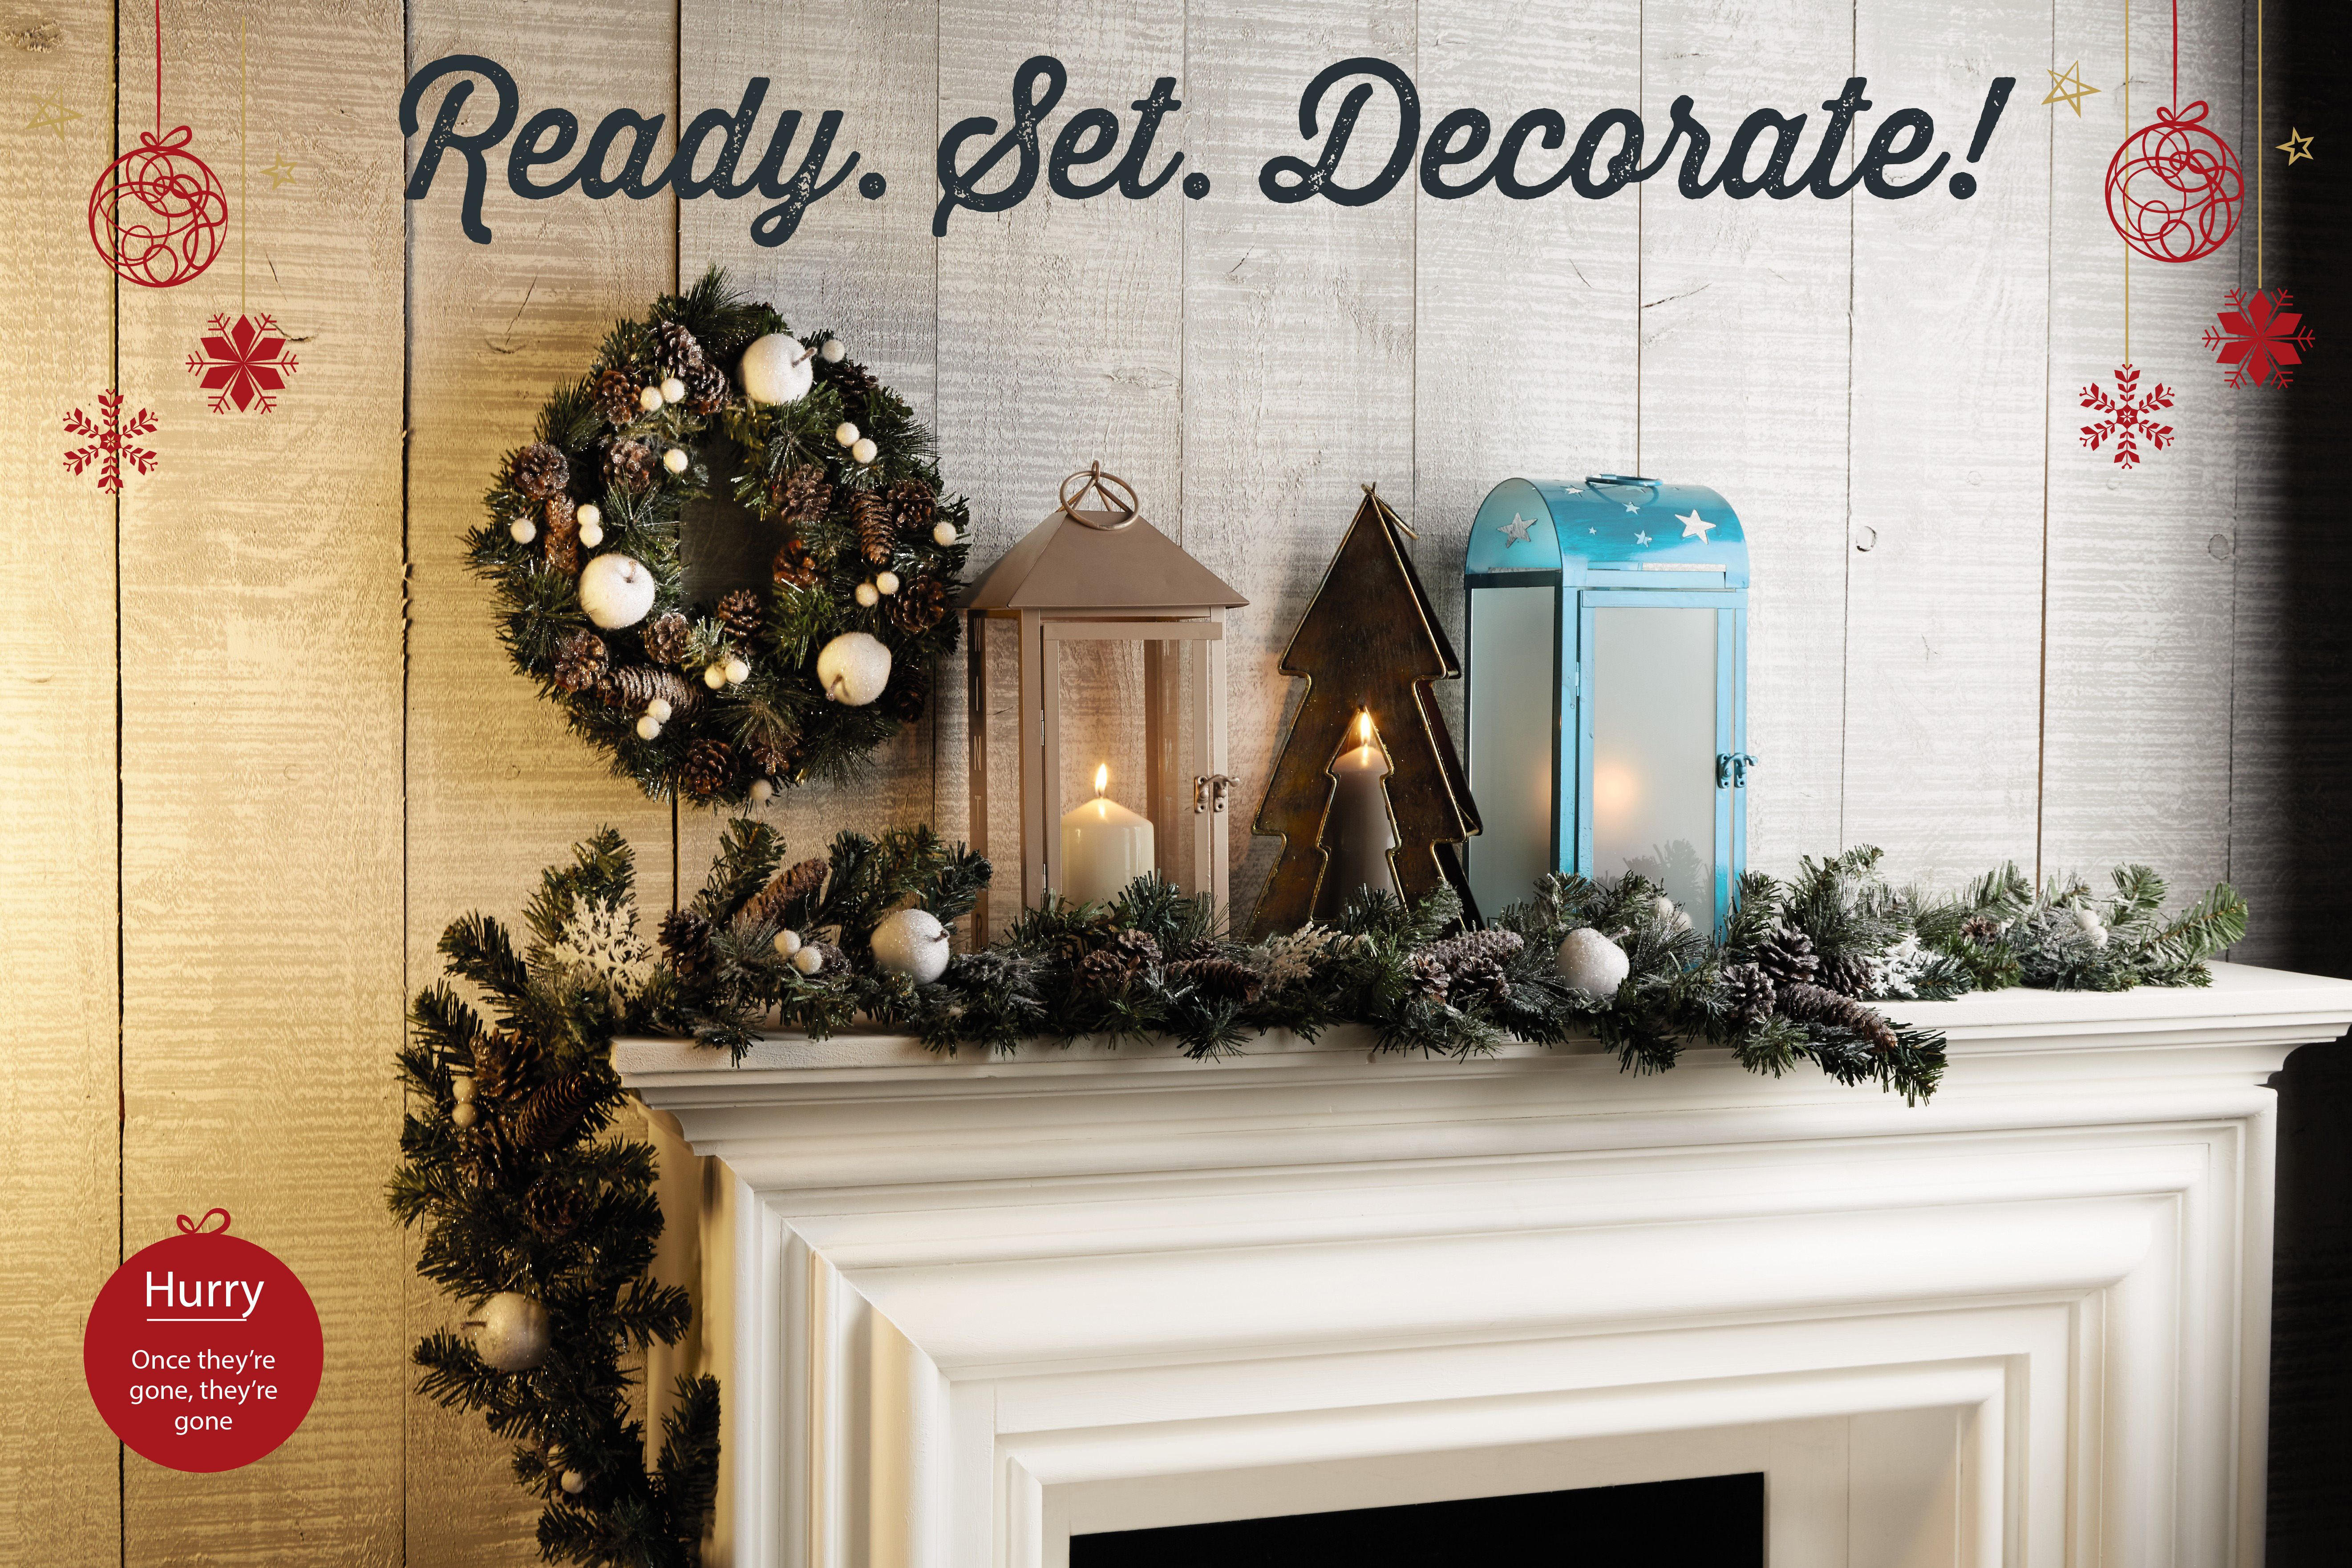 Are you excited to decorate your home ready for